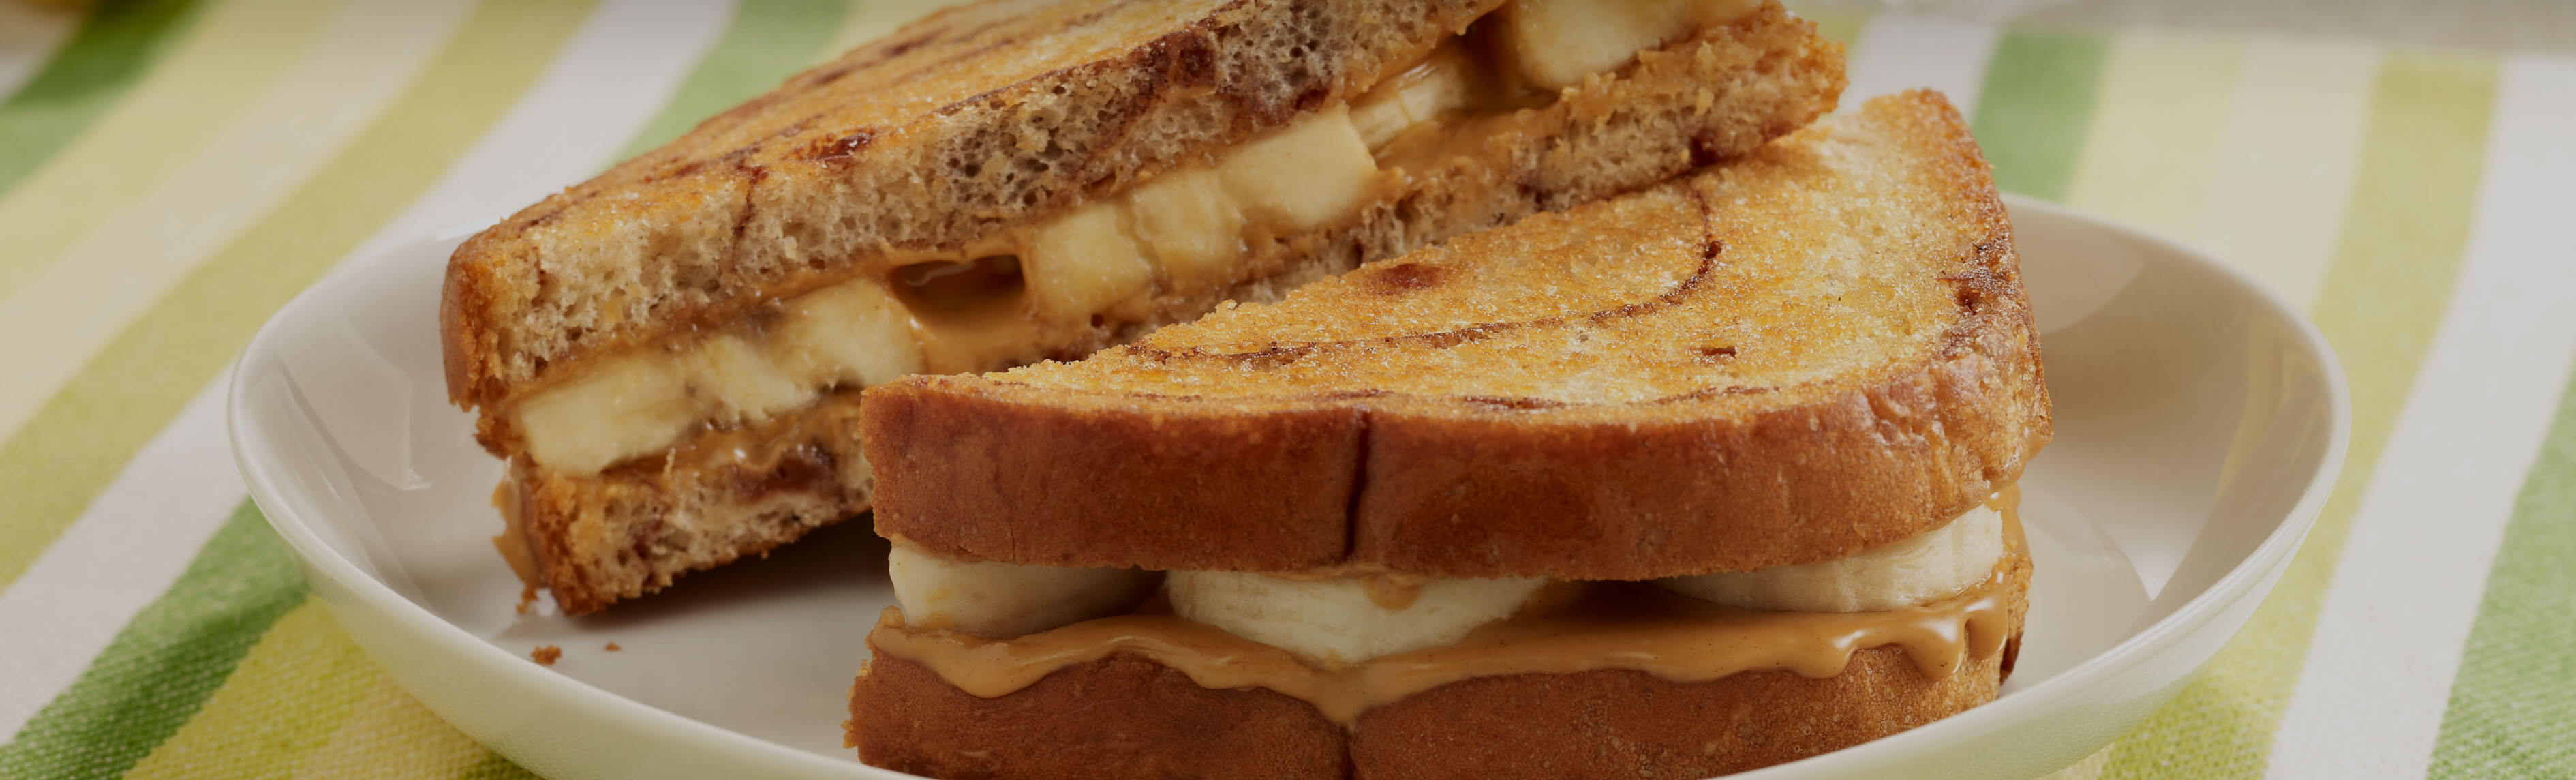 Grilled Peanut Butter and Banana Sandwiches